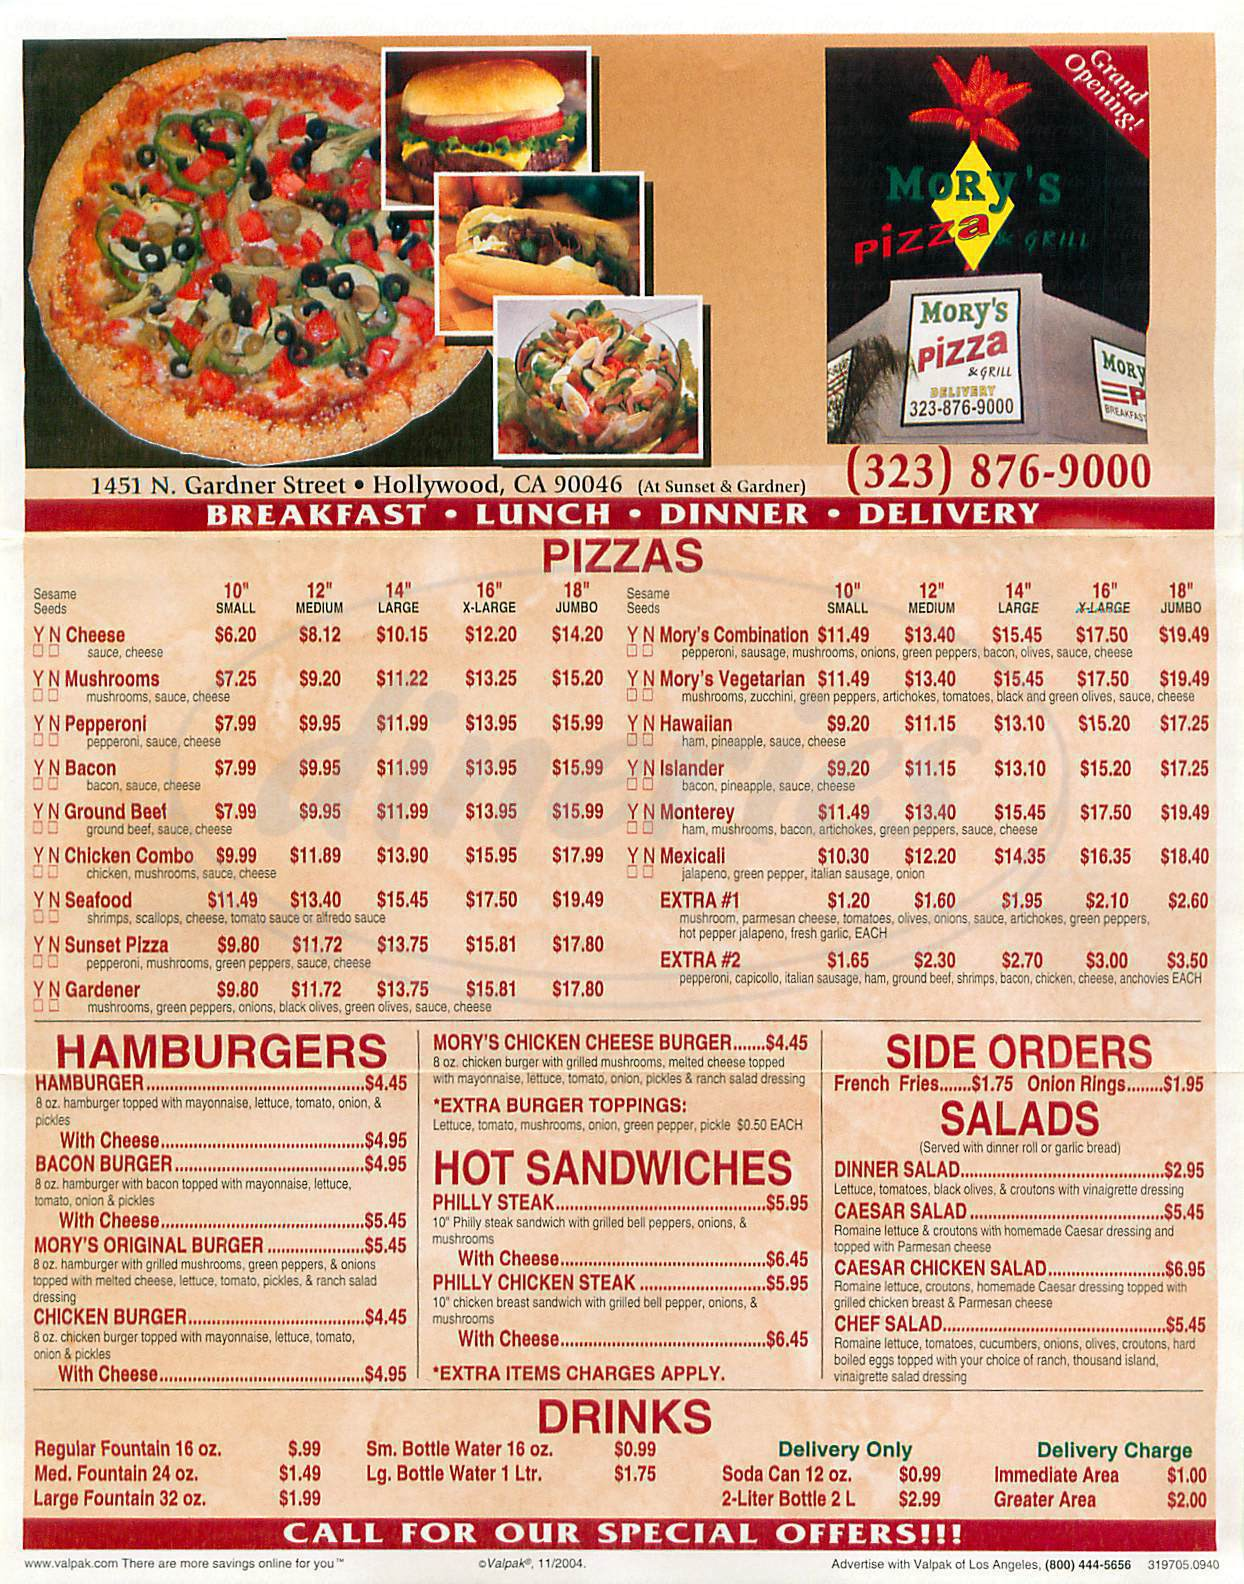 menu for Morys Pizza and Grill